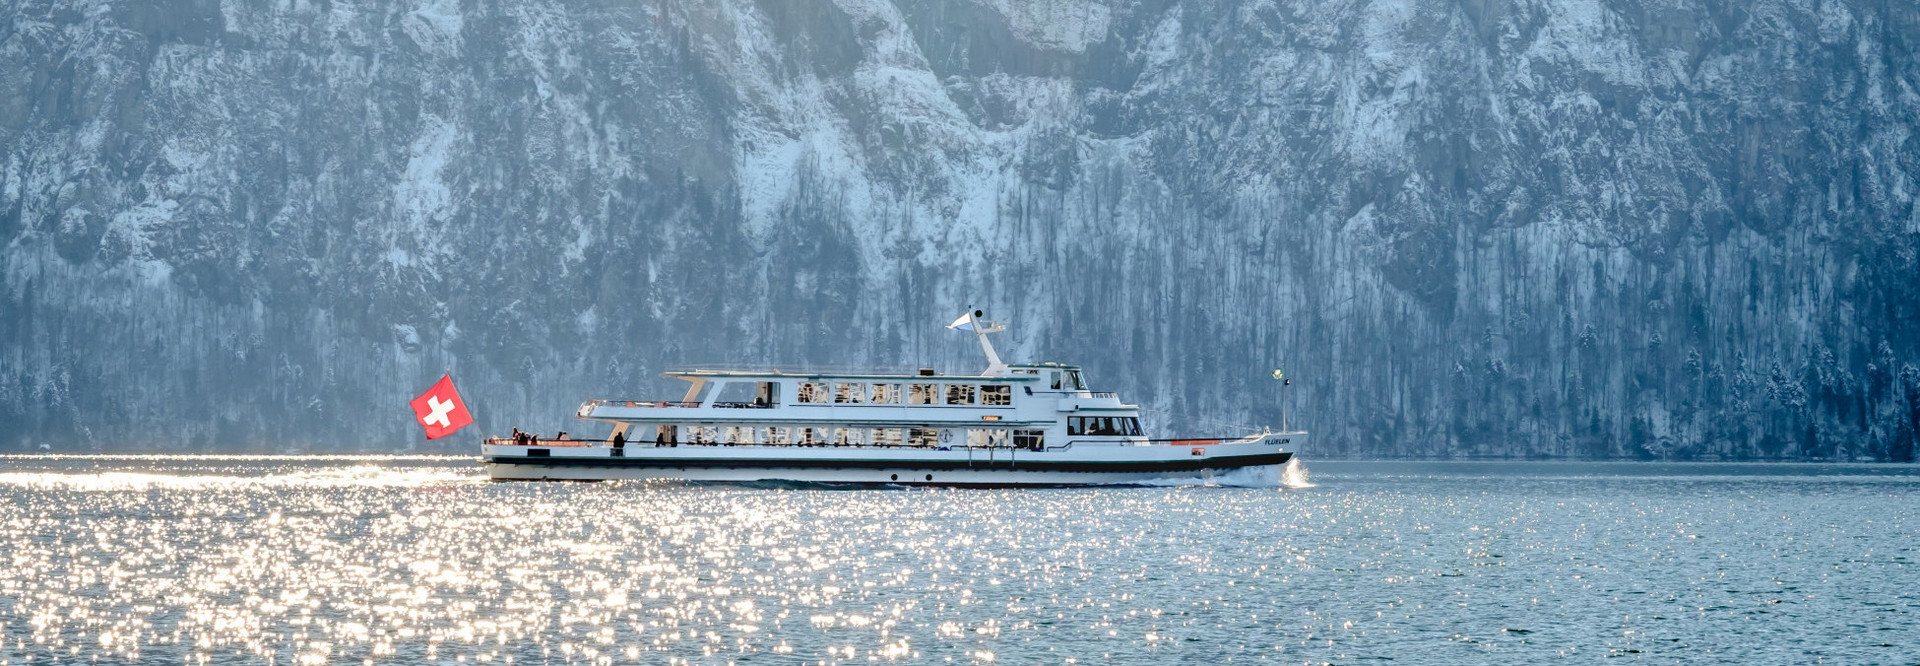 A motor vessel of the Lake Lucerne Navigation Company (SGV) AG travels on Lake Lucerne in winter.